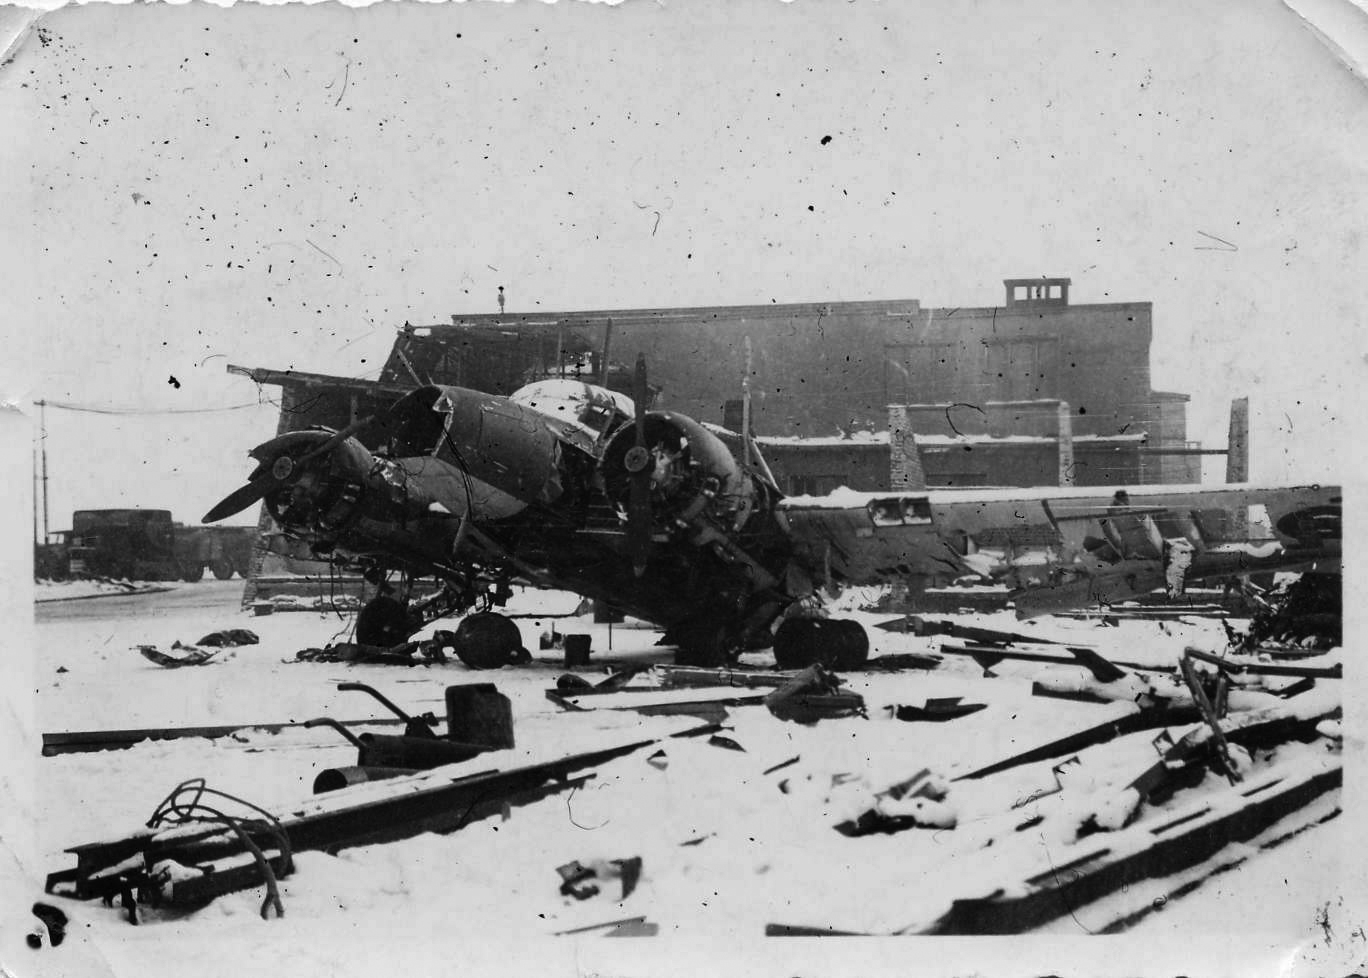 The destroyed airfield and fighters of No. 403 Squadron at Evere, January 1, 1945. Germany's Operation BODENPLATTE called for a surprise attack against 16 Allied air bases in Belgium, the Netherlands and France, resulting in the destruction or crippling of as many aircraft, hangars and airstrips as possible. (john le may)